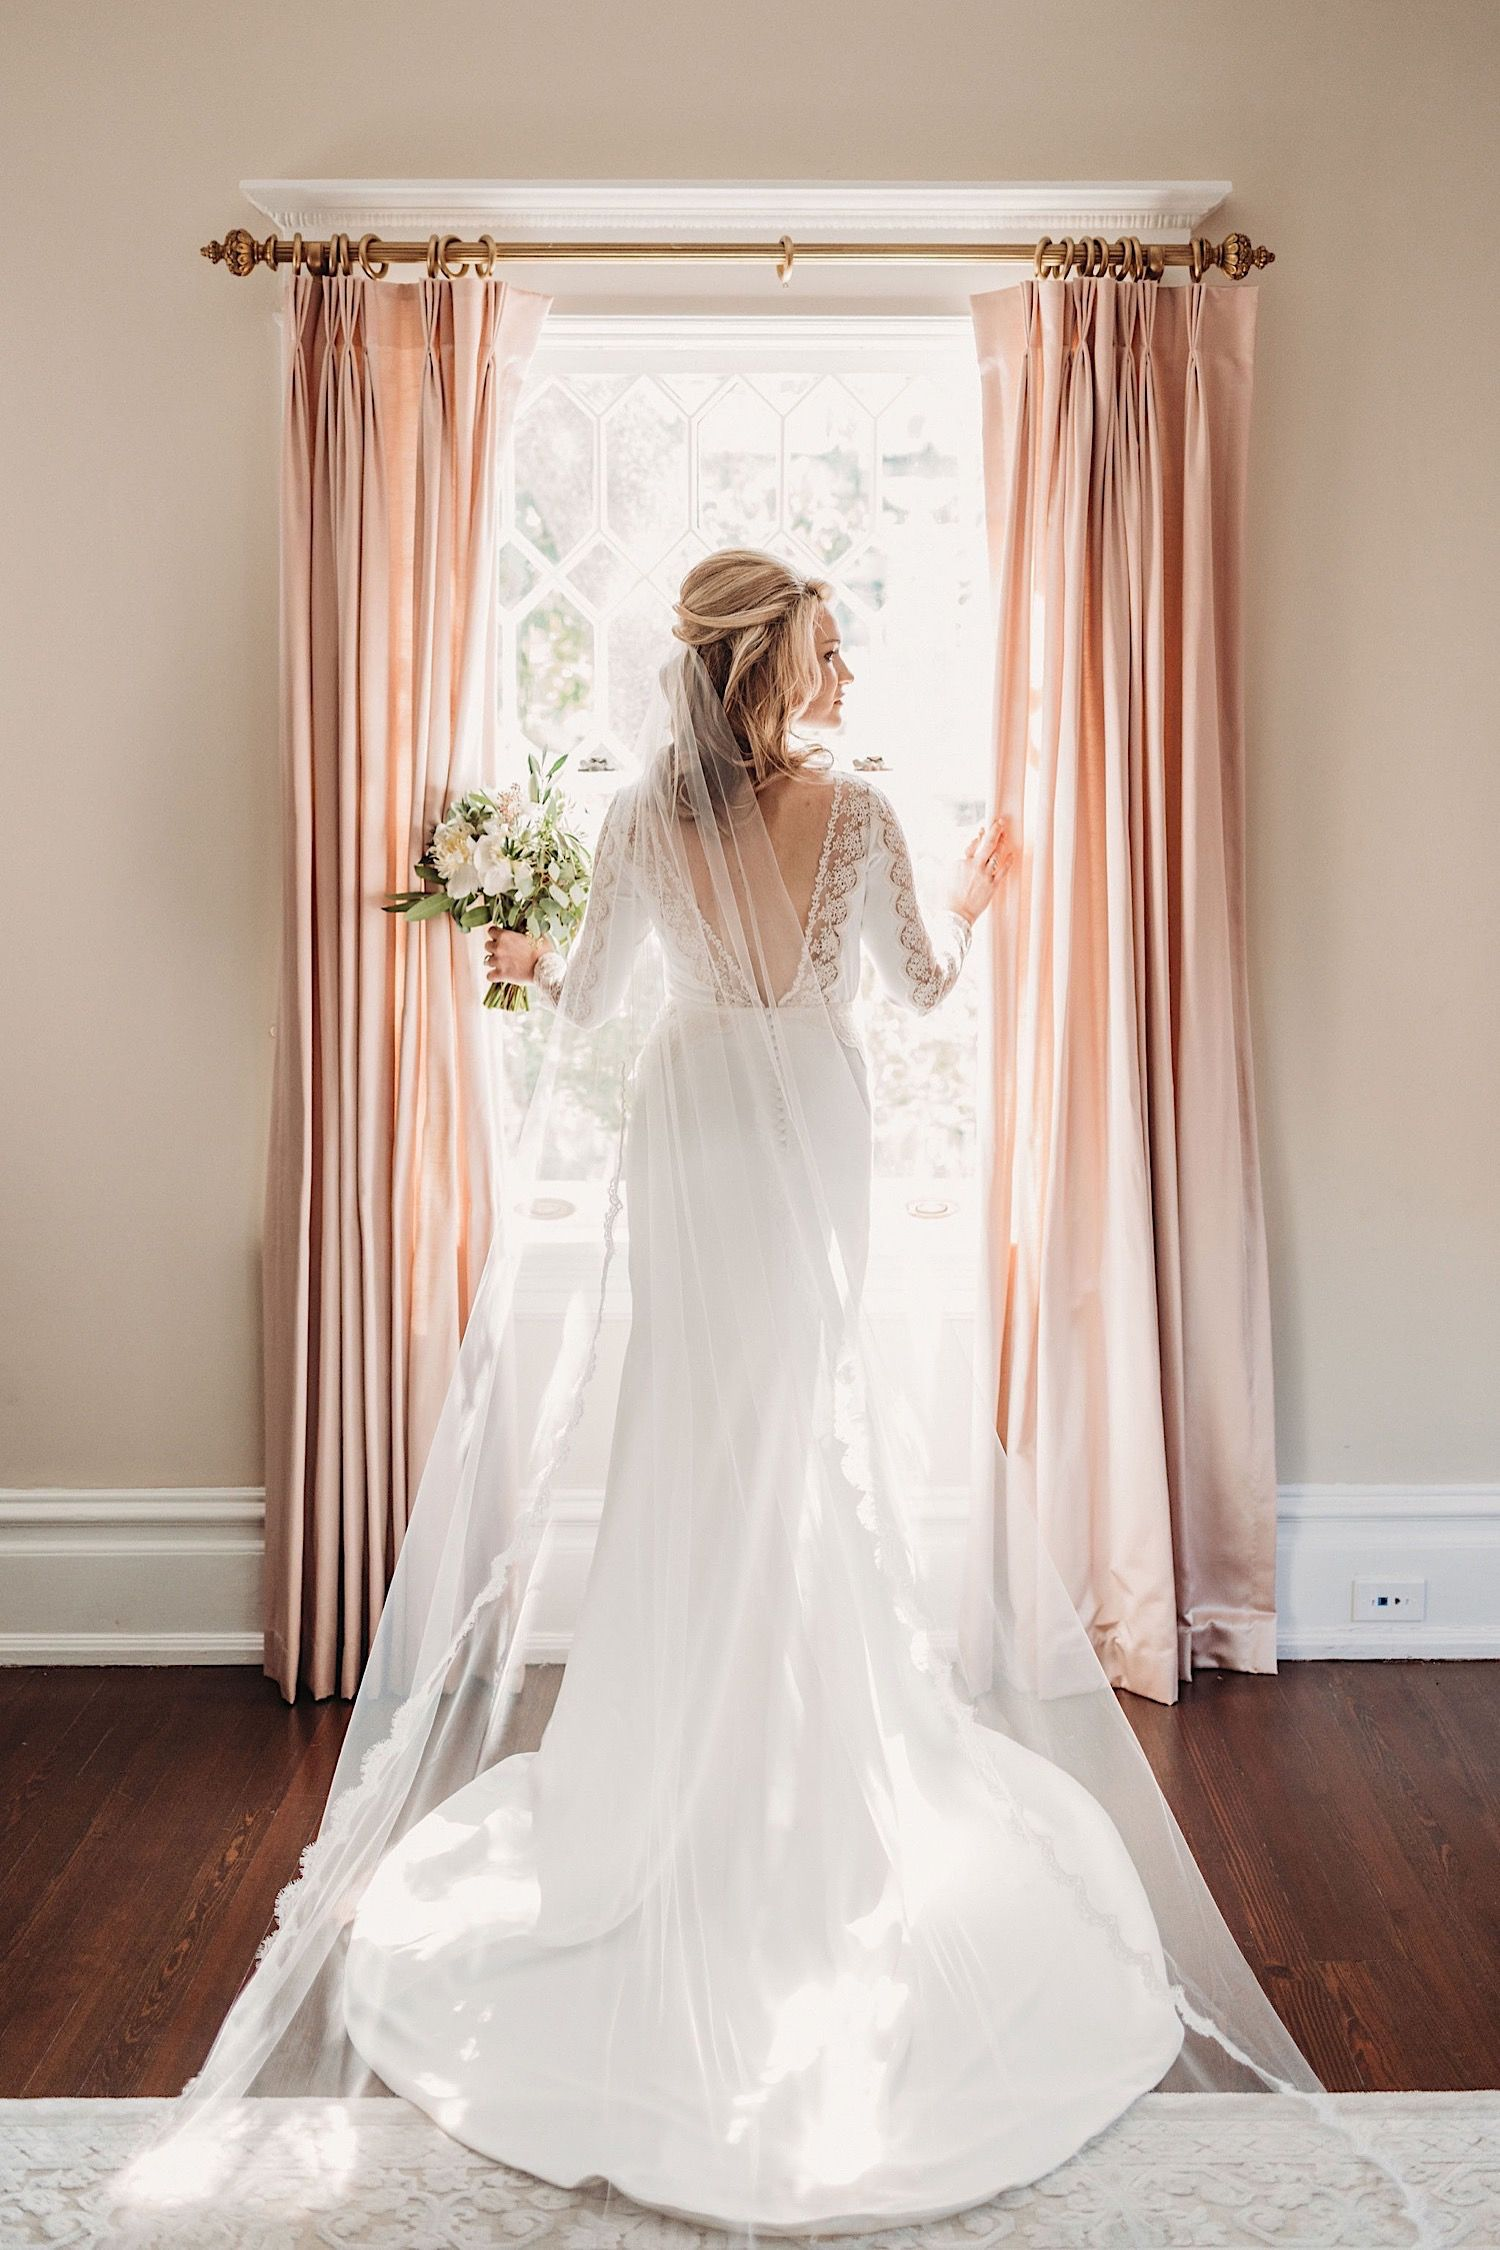 Bride in BHLDN wedding dress standing in the window